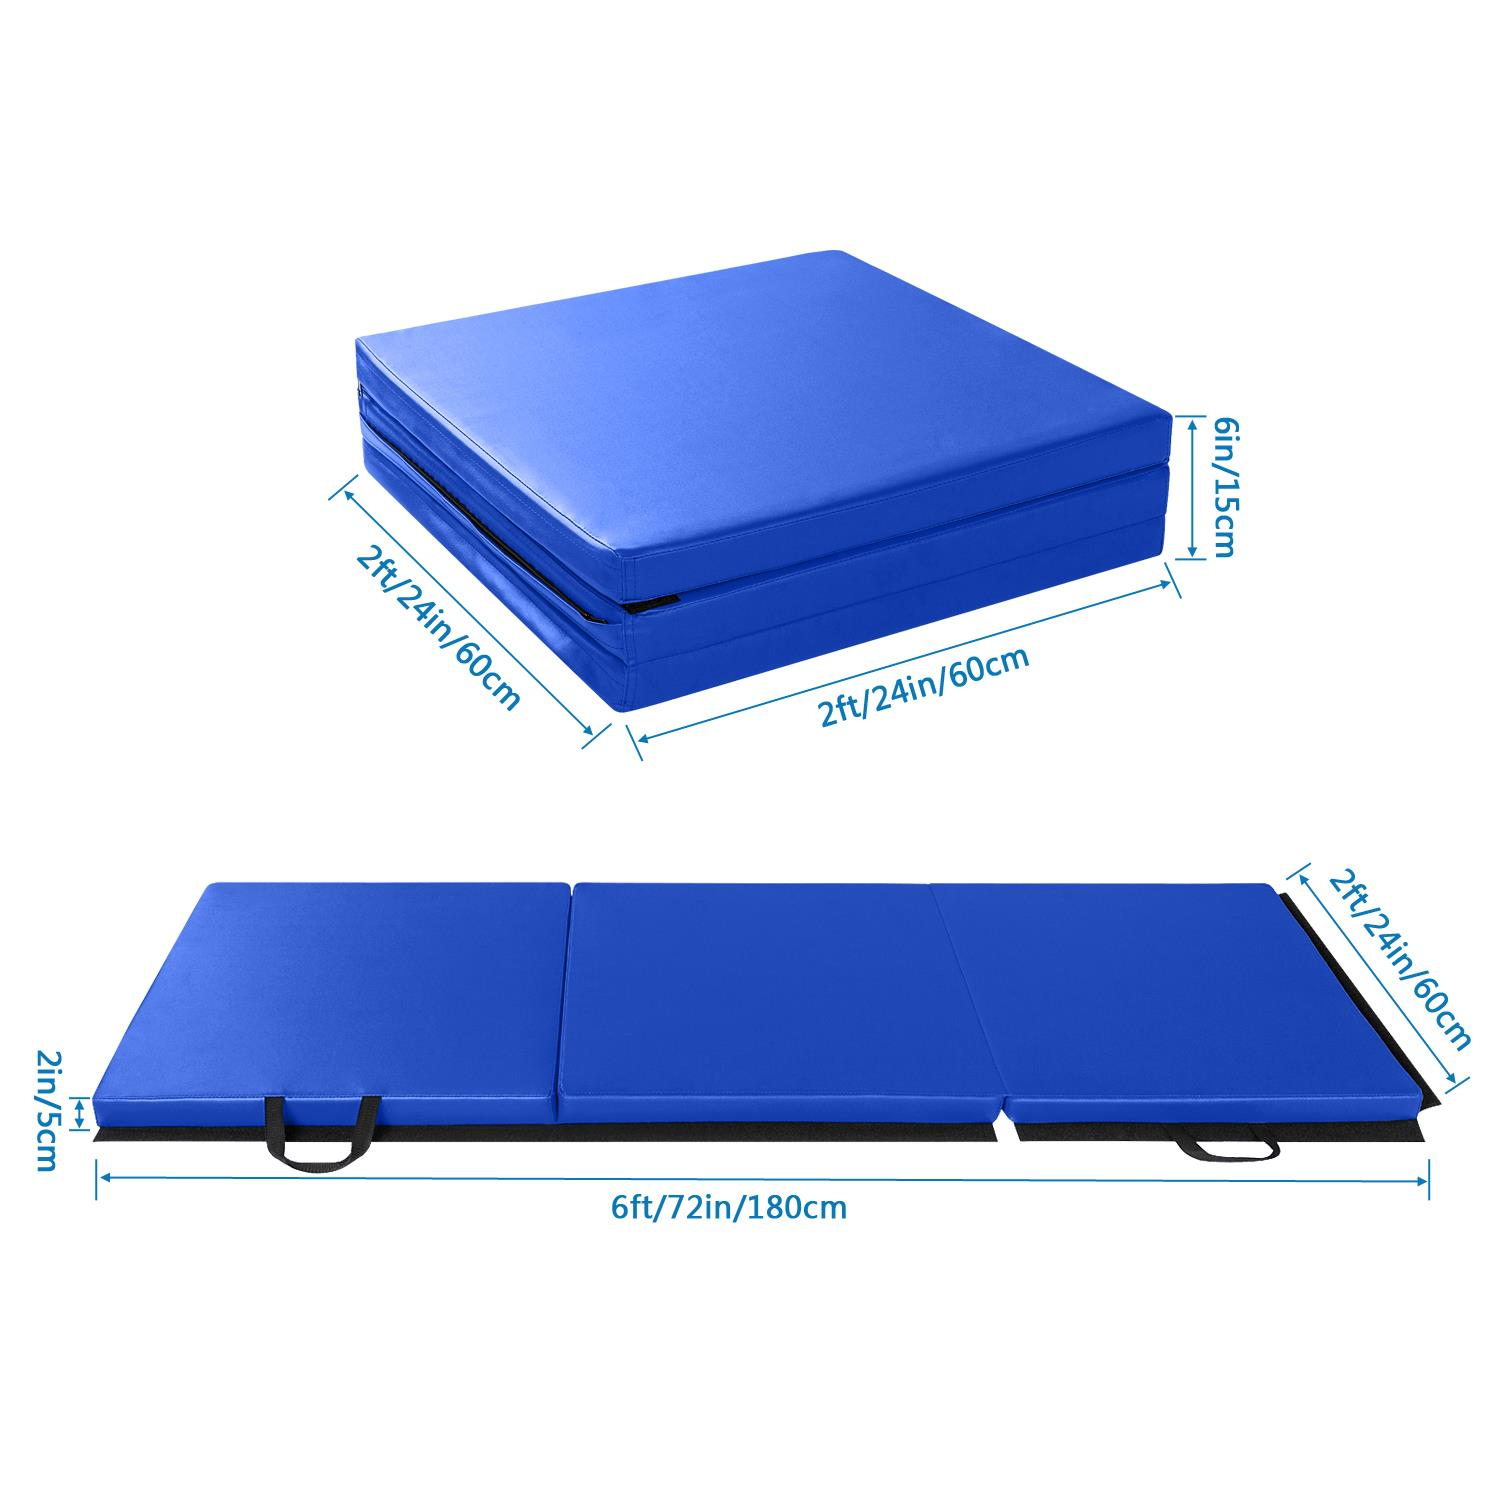 "6'x2'x2"" Folding Mat Thick Foam Fitness Exercise Gymnastics Panel Gym Workout 6"